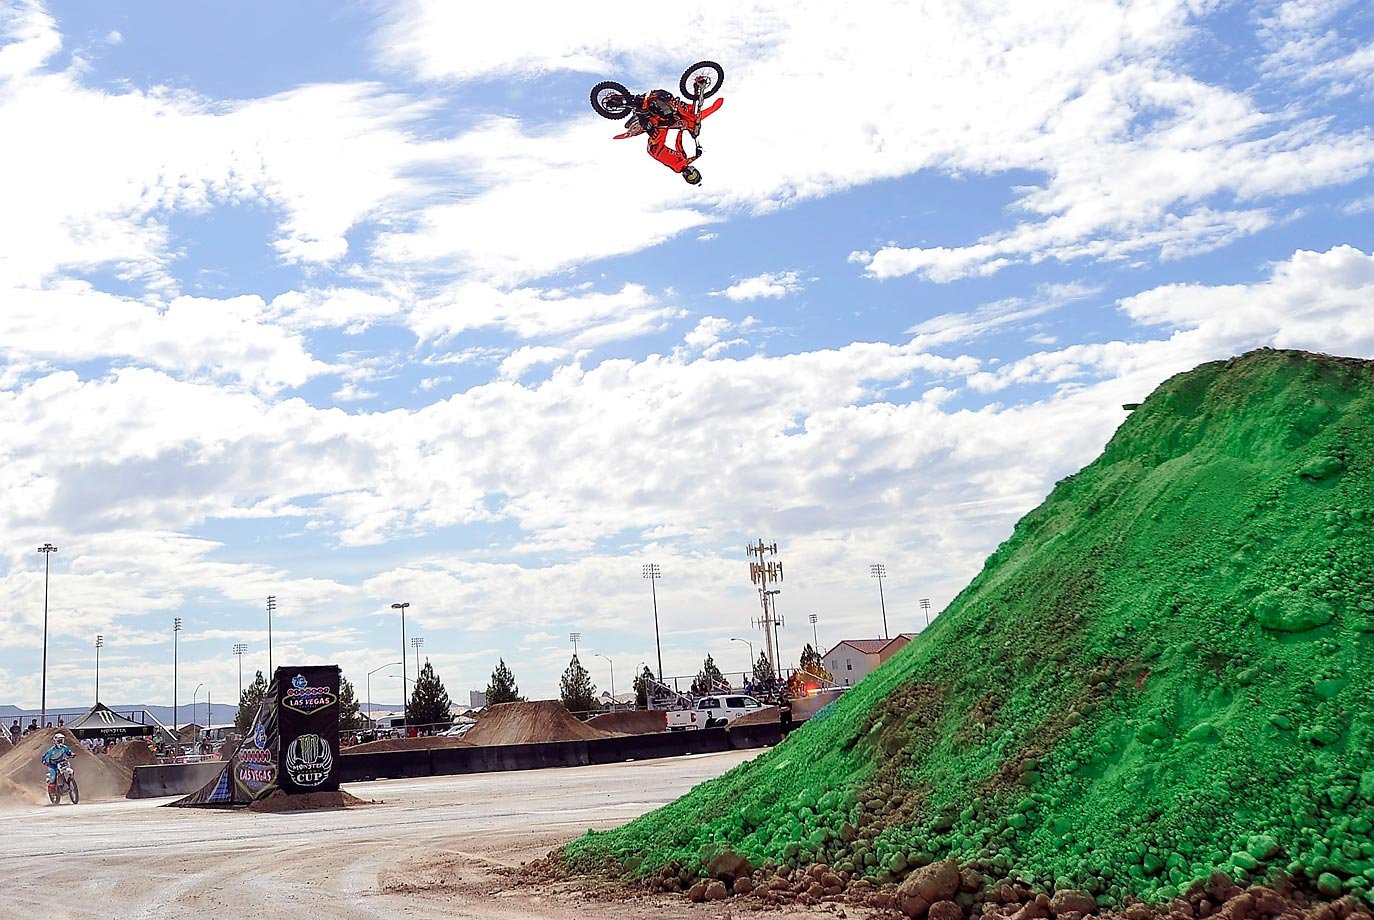 Freestyle rider Ronnie Renner performs during a qualifying round for the Dirt Shark Biggest Whip at the Monster Energy Cup.